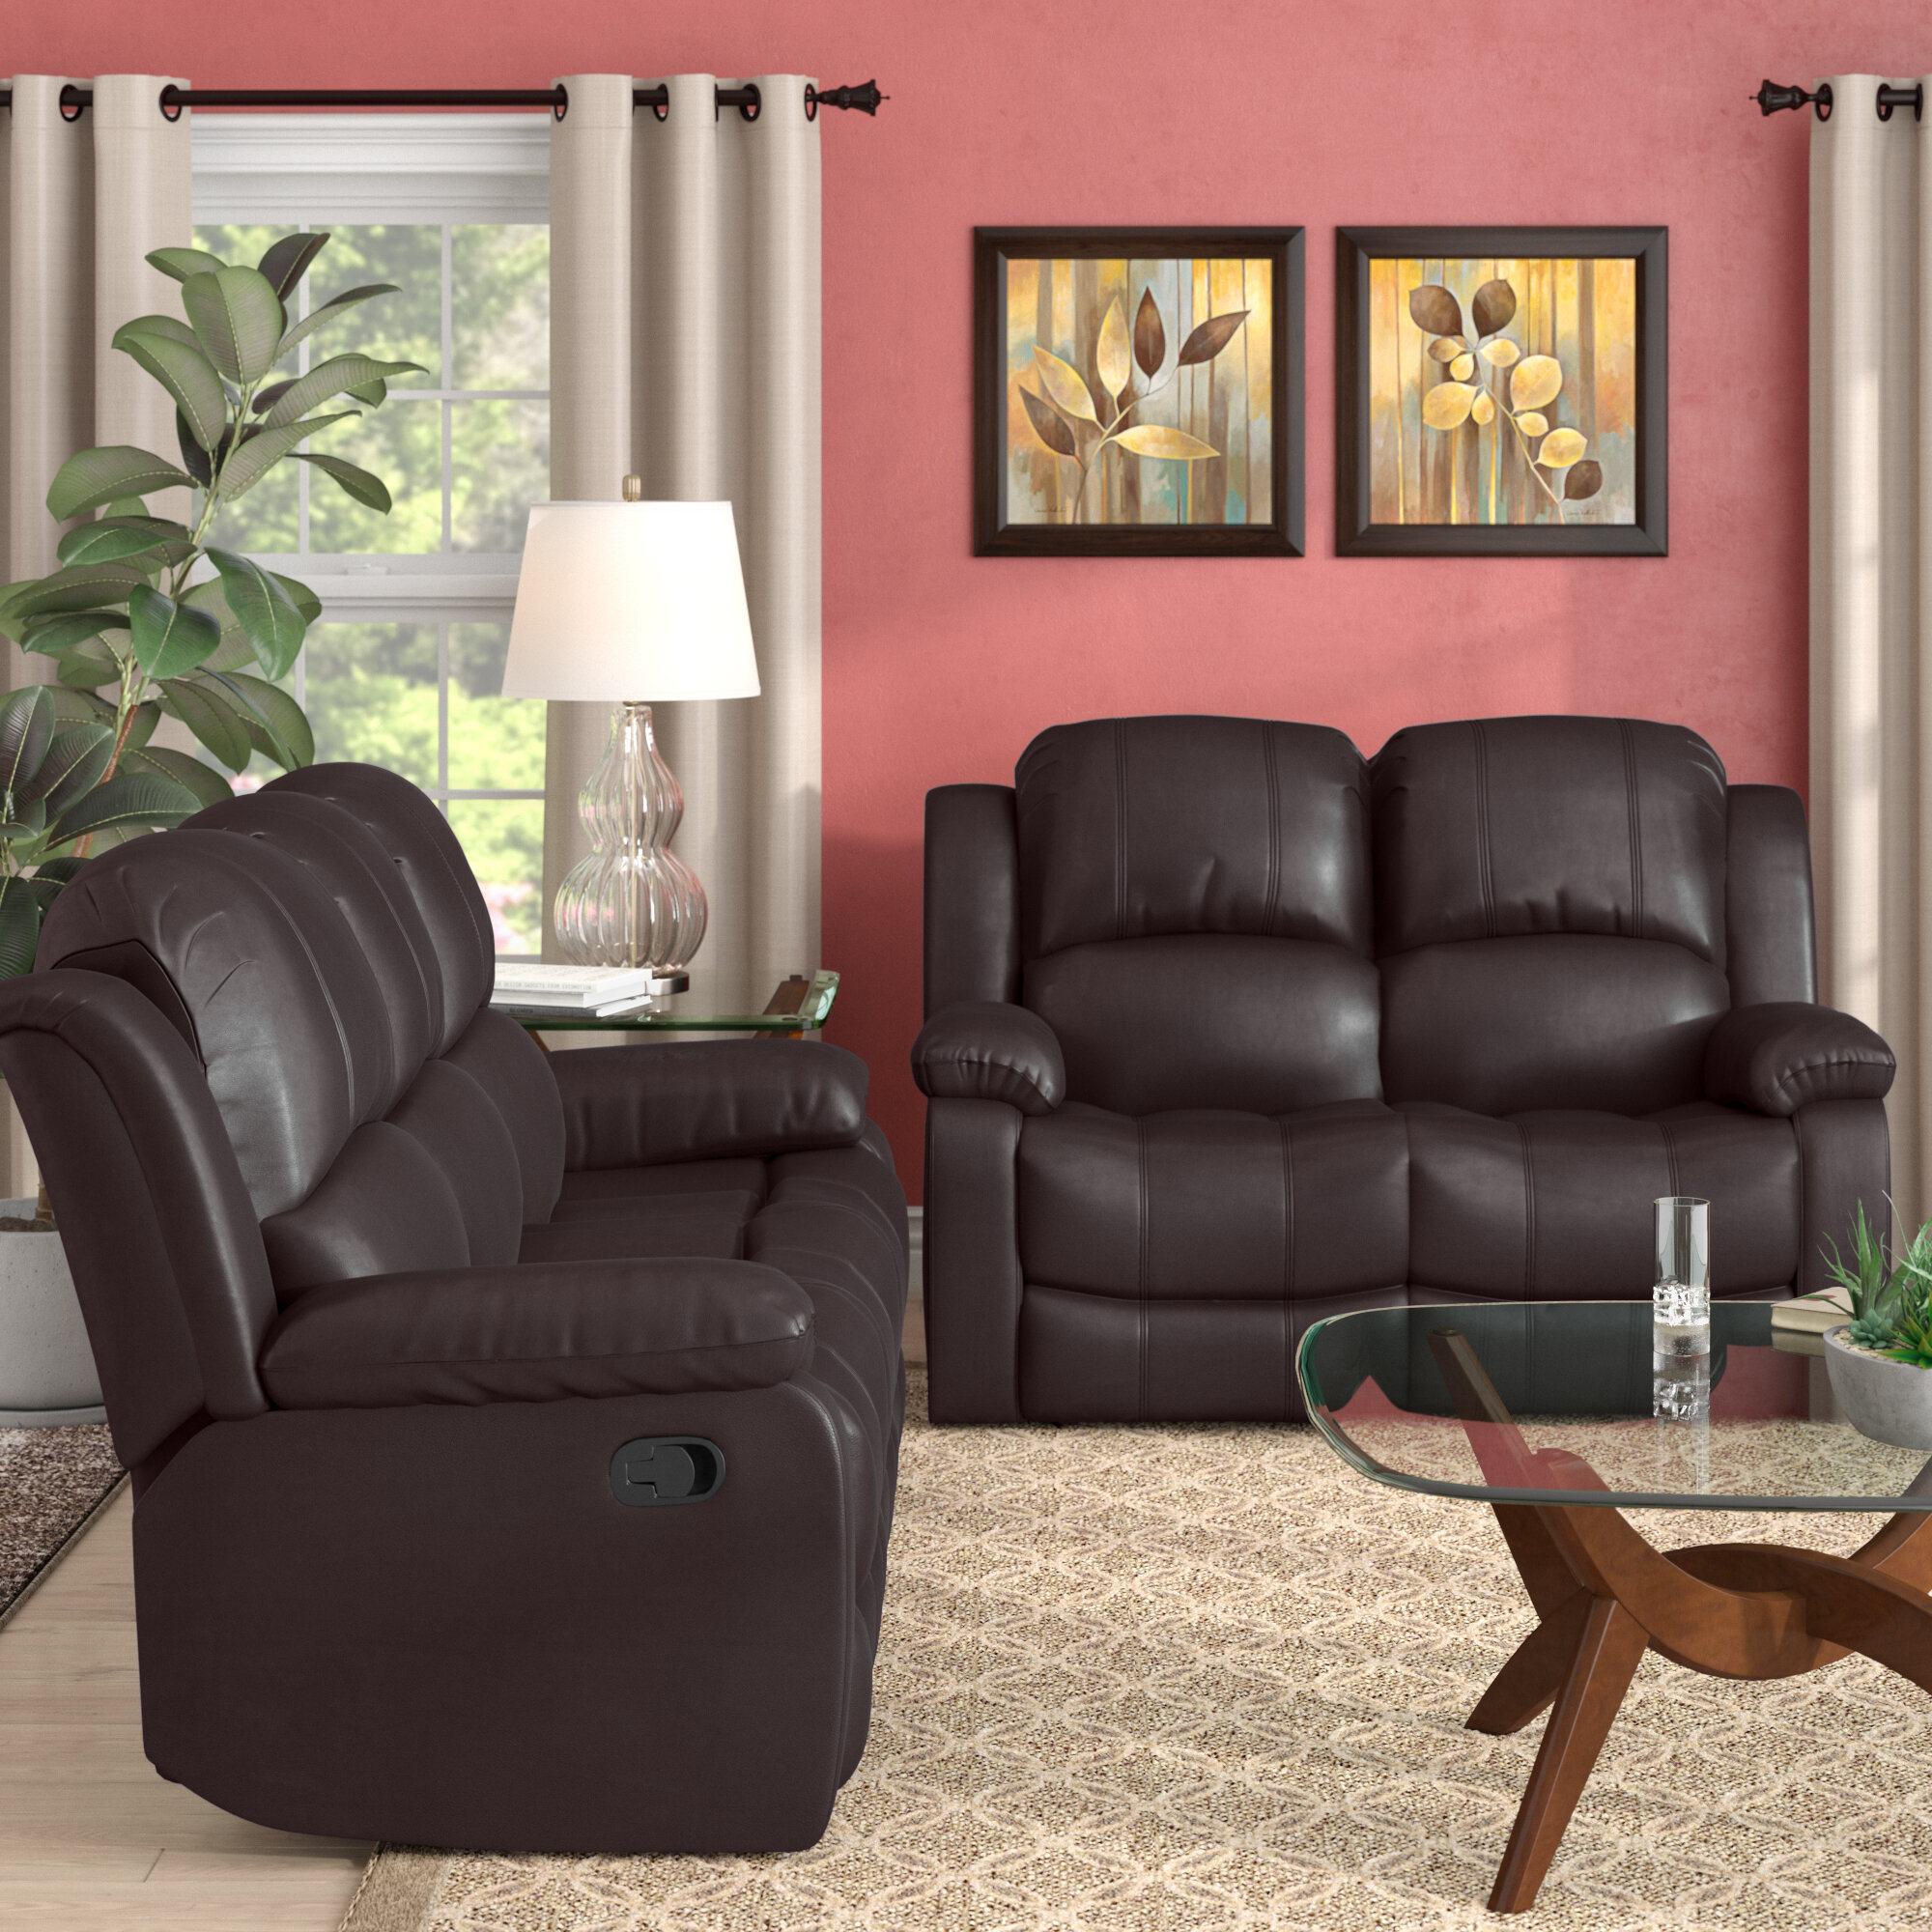 ideas set furniture value city for sets leather vacation fantastic ten living the room